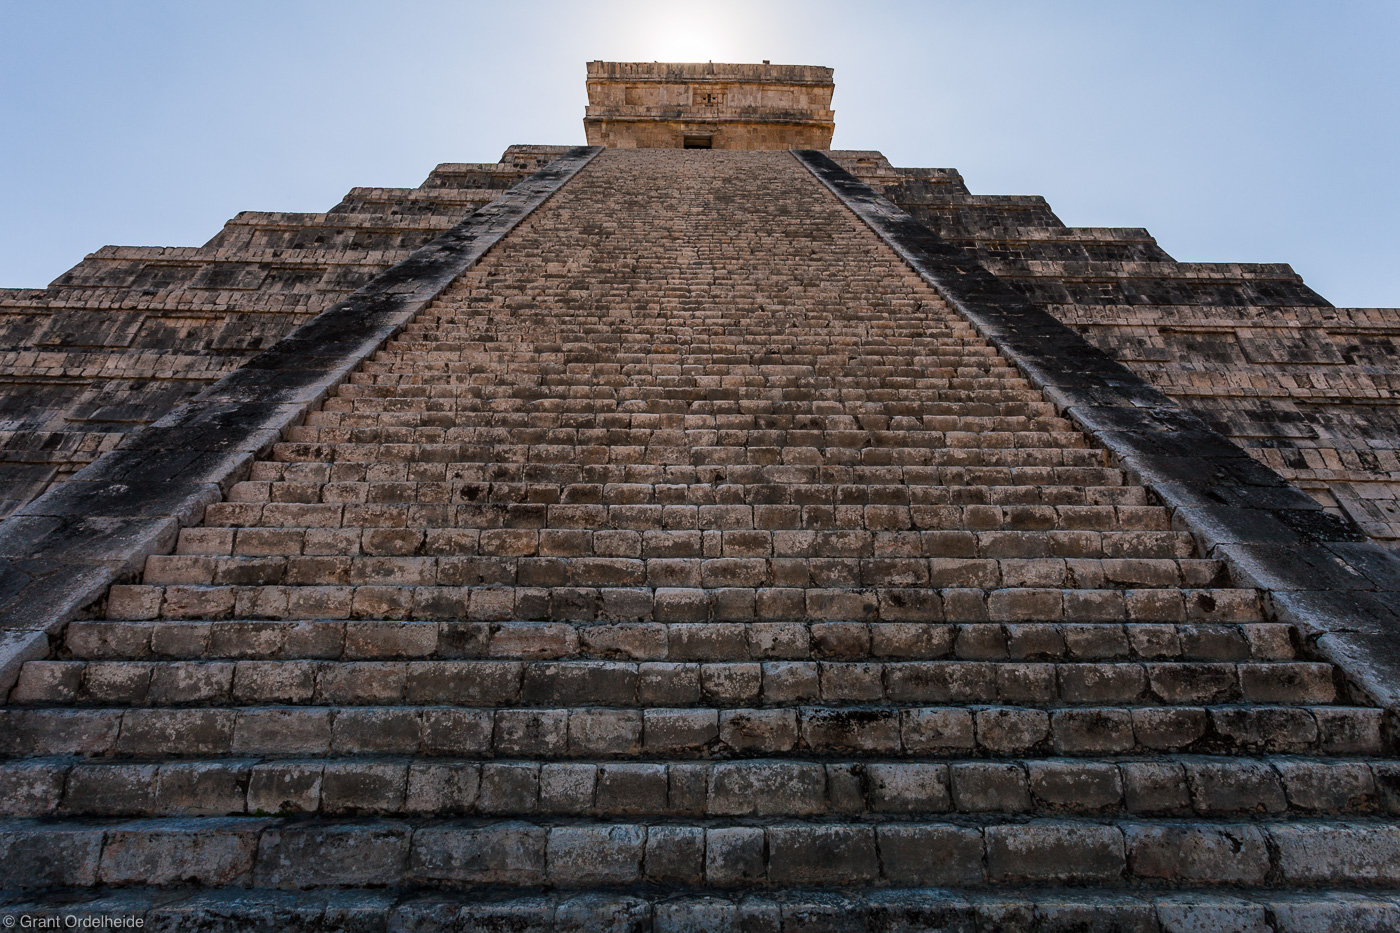 chichen itza, yucatan, mexico, temple of kukulan, historic, structure, el castillo, equinox, photo